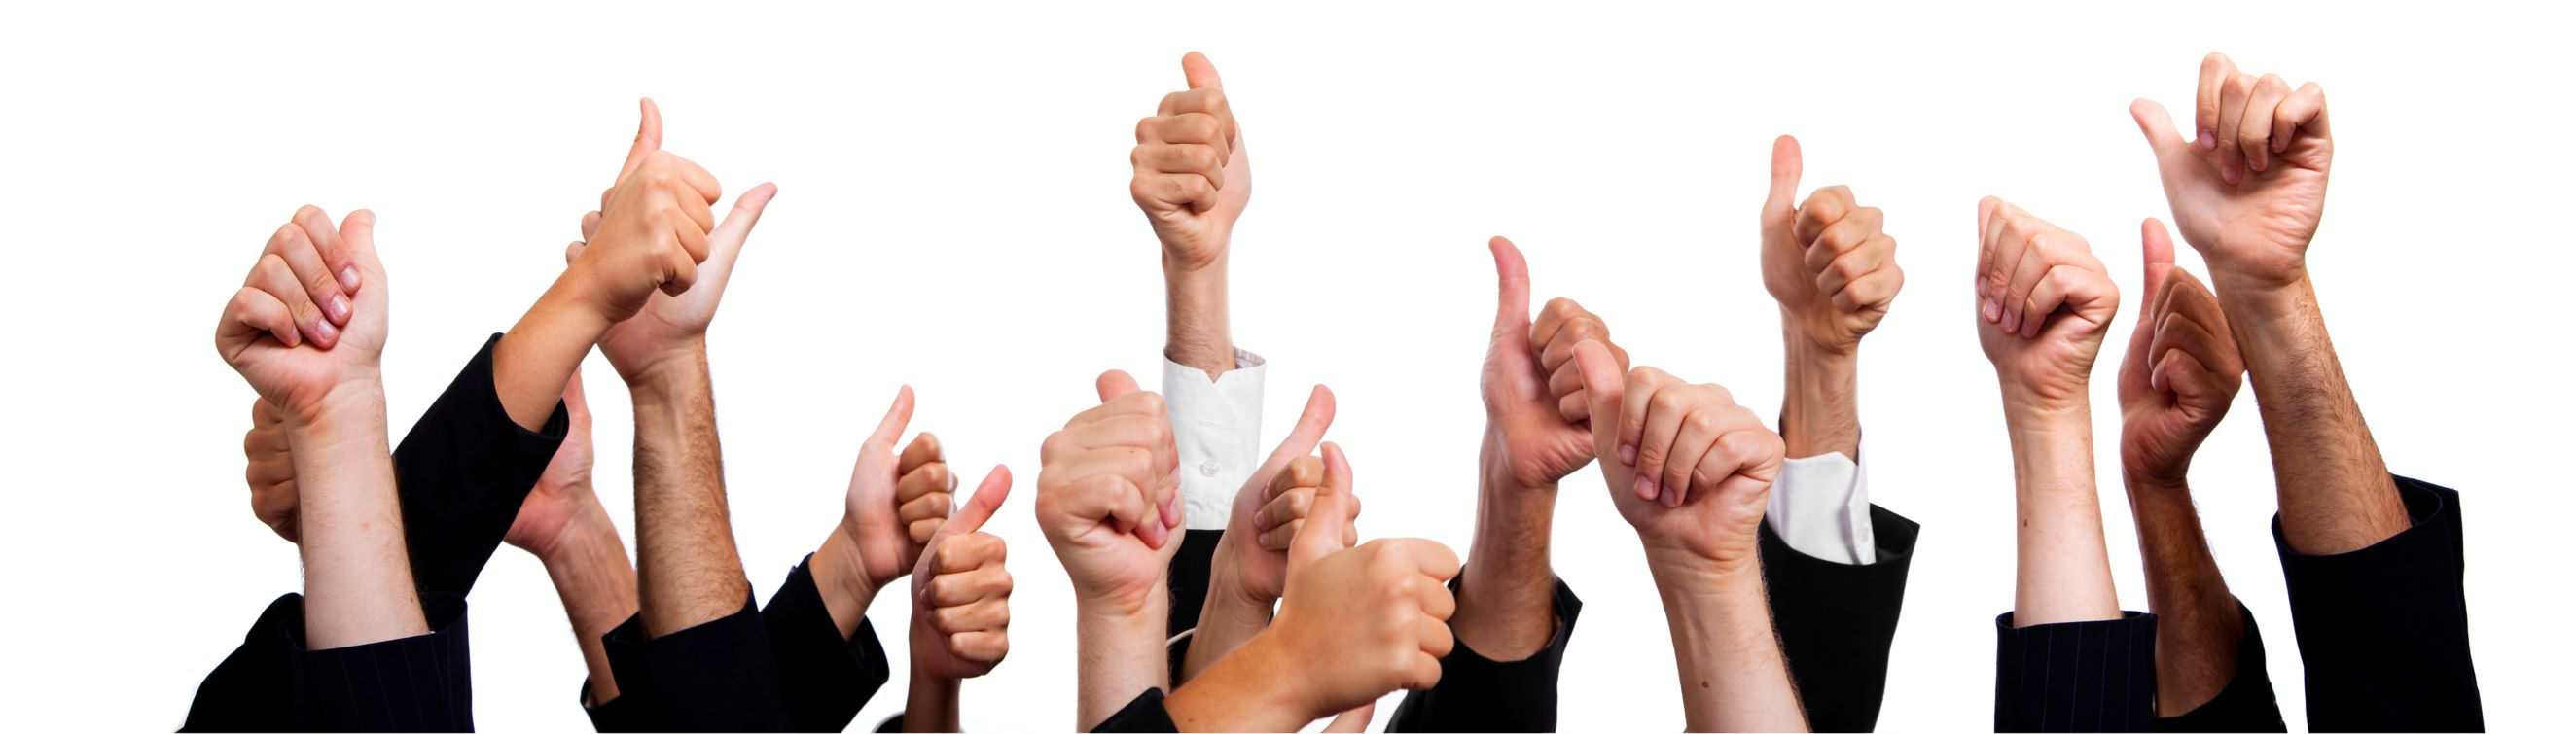 Testimonial Page Header Image of Thumbs up